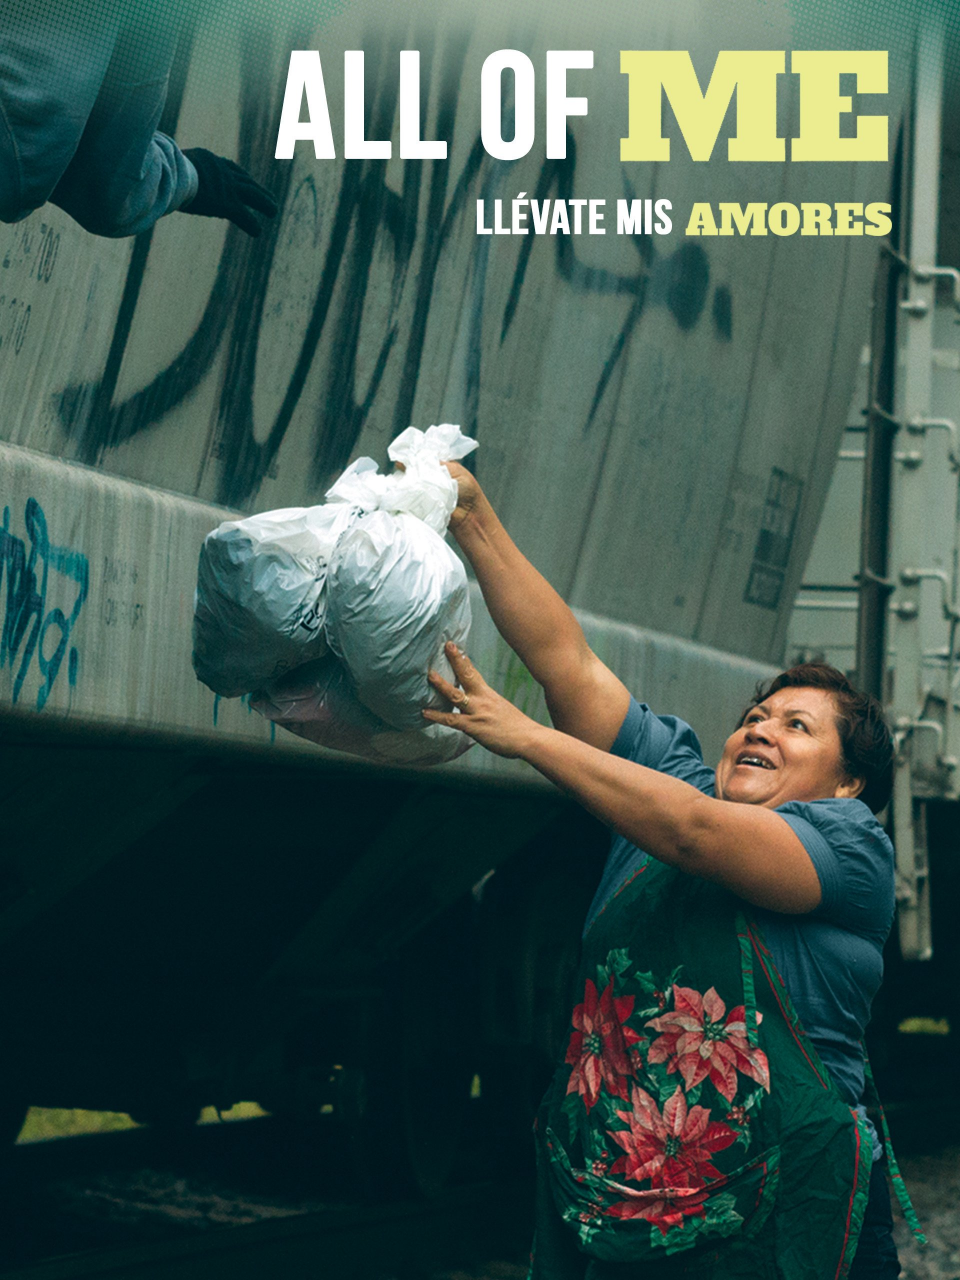 Movie cover: All of Me, a woman handing bags of food to a passenger on a train